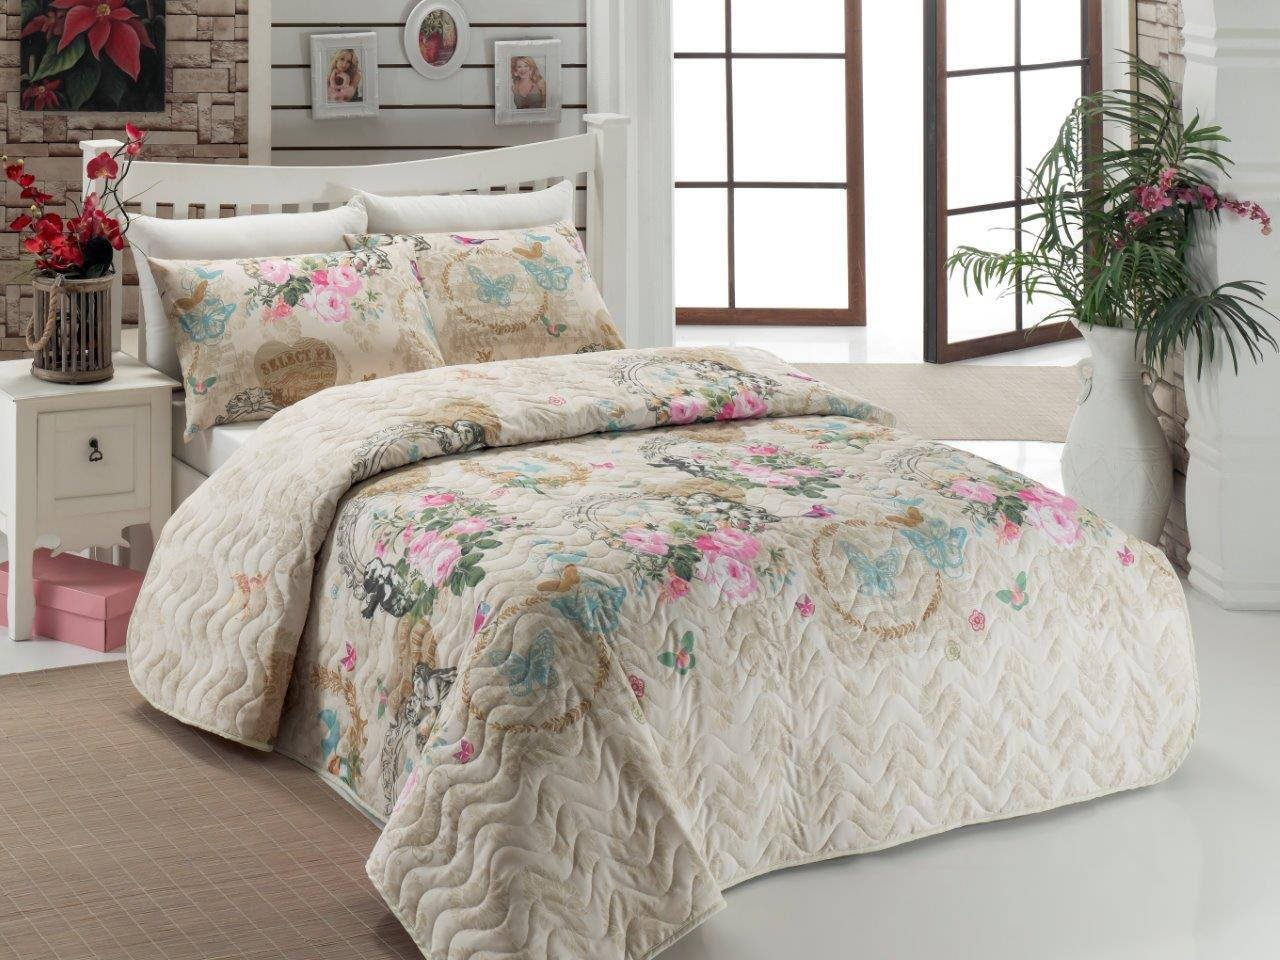 3 Pcs Soft Colored Full and Double Bed Size Bedroom Bedding 65% Cotton Double Quilted Bedspread Set 100% Fiber Filling Padded Butterfly Love Romantic Animal Pattern Shape Flower Leaf Bedspread Set